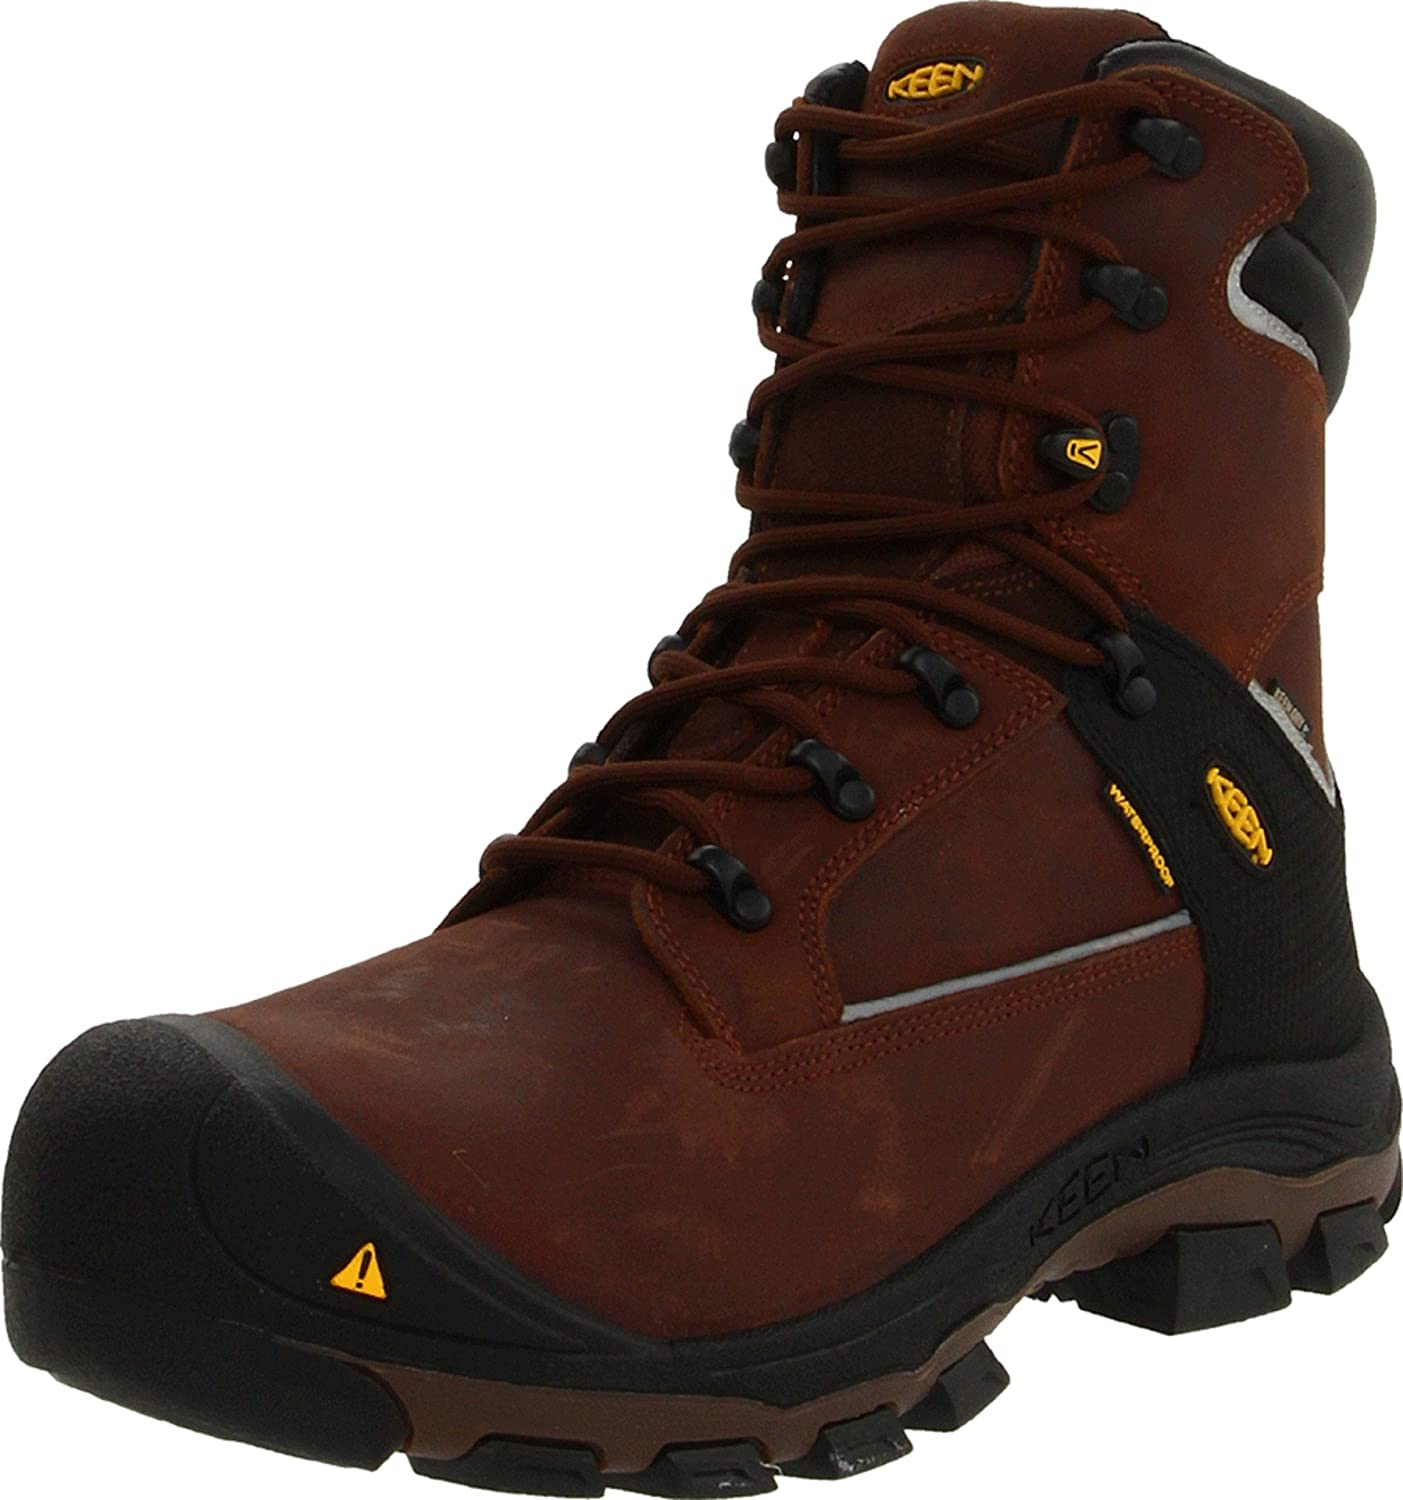 KEEN Utility Men's Portland Work Boots will protect your ffet from almost any hazards.